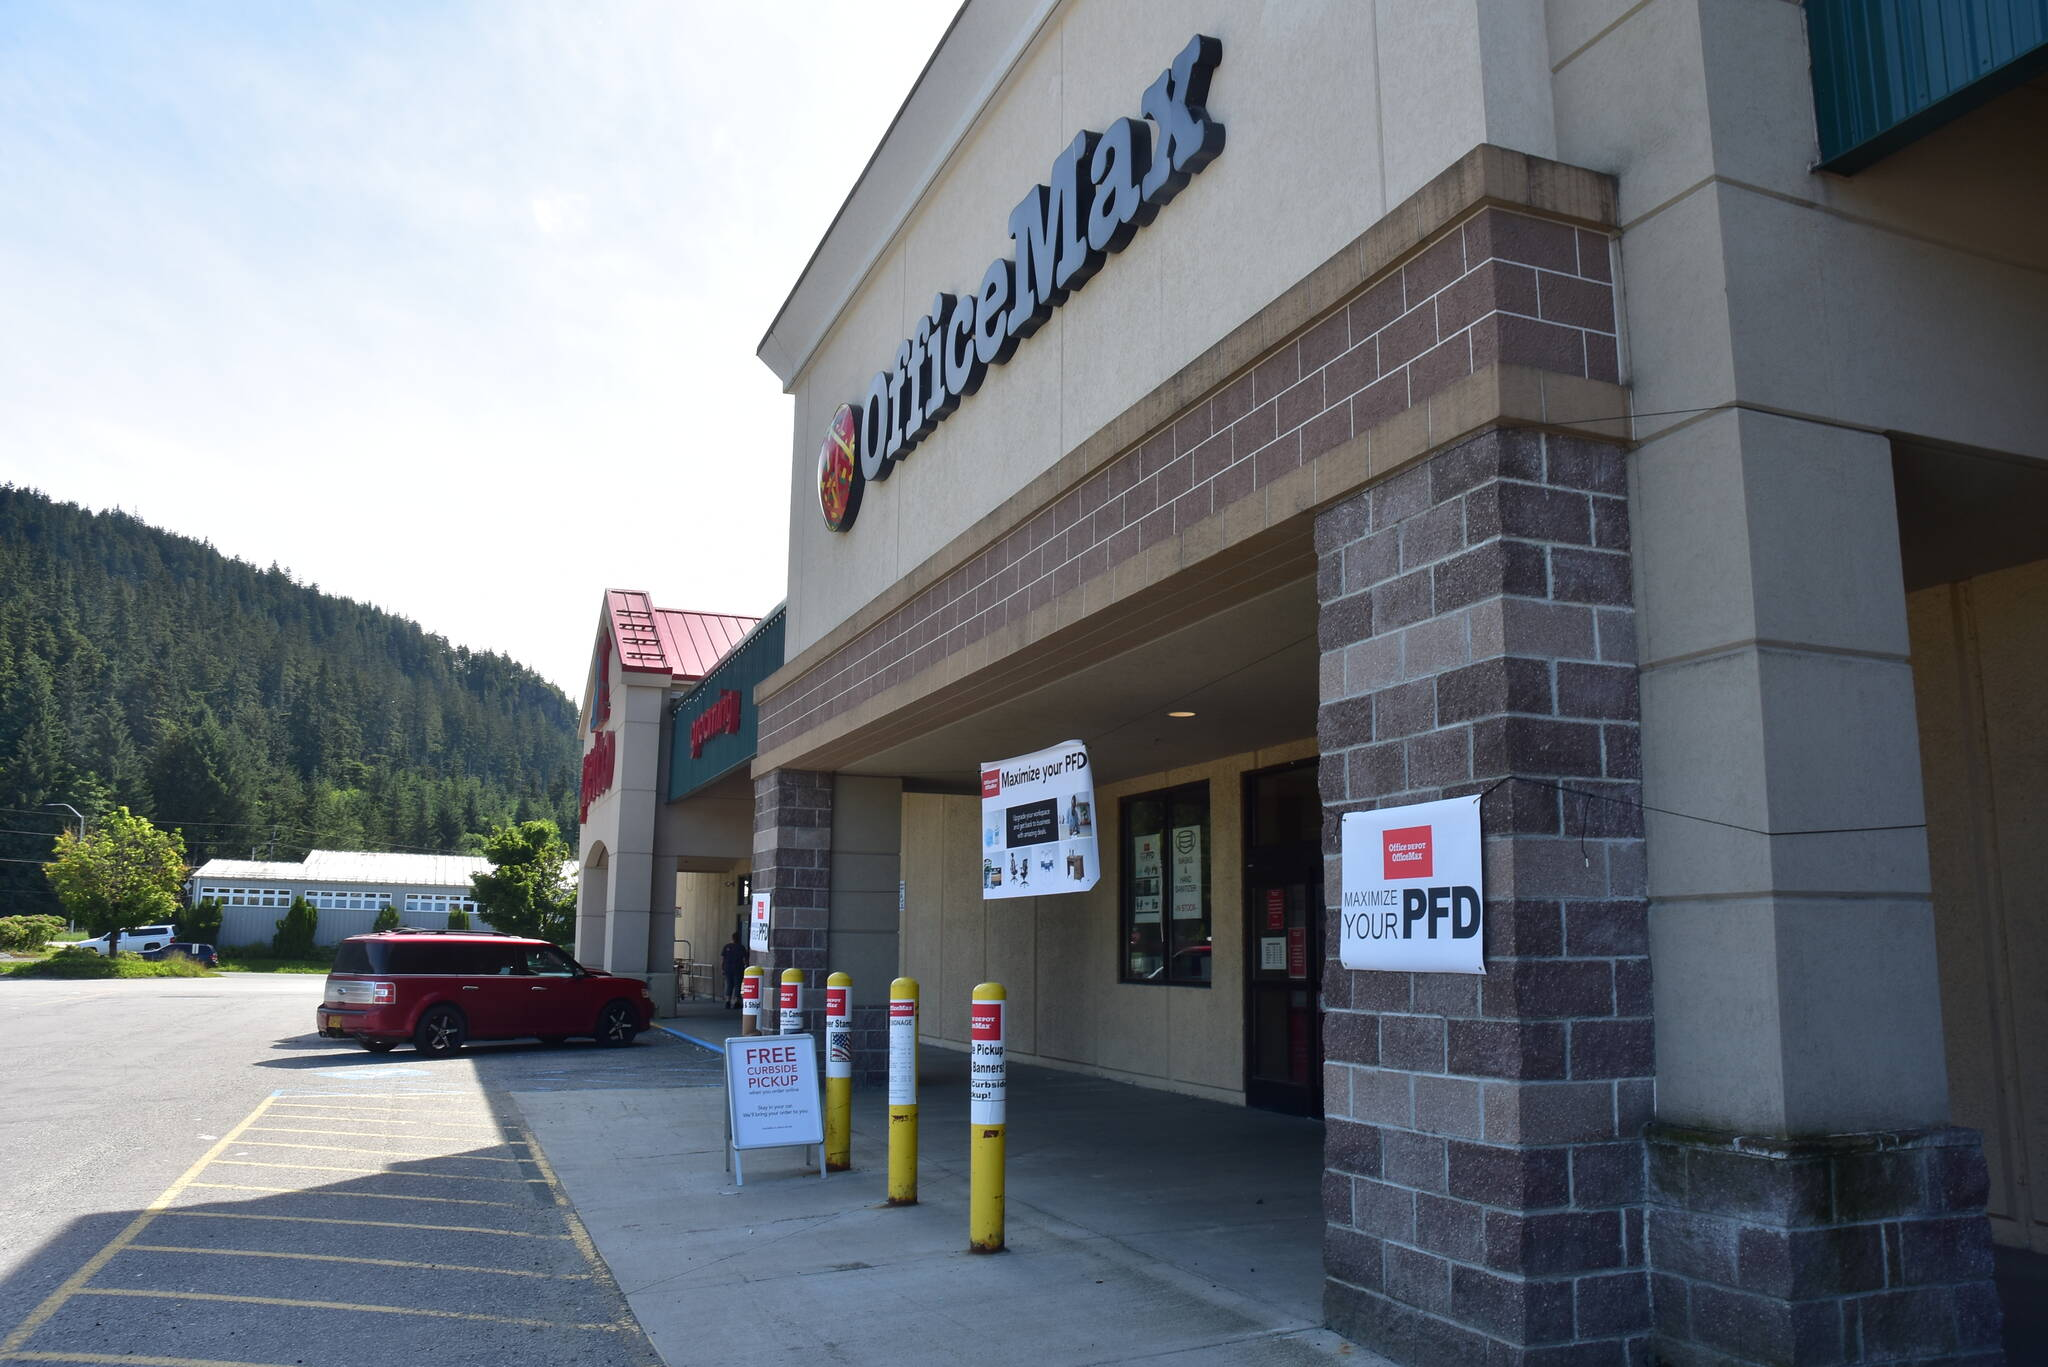 Office Max at the Nugget Mall in the Mendenhall Valley advertised Permanent Fund dividend sales on Thursday, July 2, 2020. This year's PFD will be  $1,114, the Alaska Department of Revenue announced. (Peter Segall / Juneau Empire File)